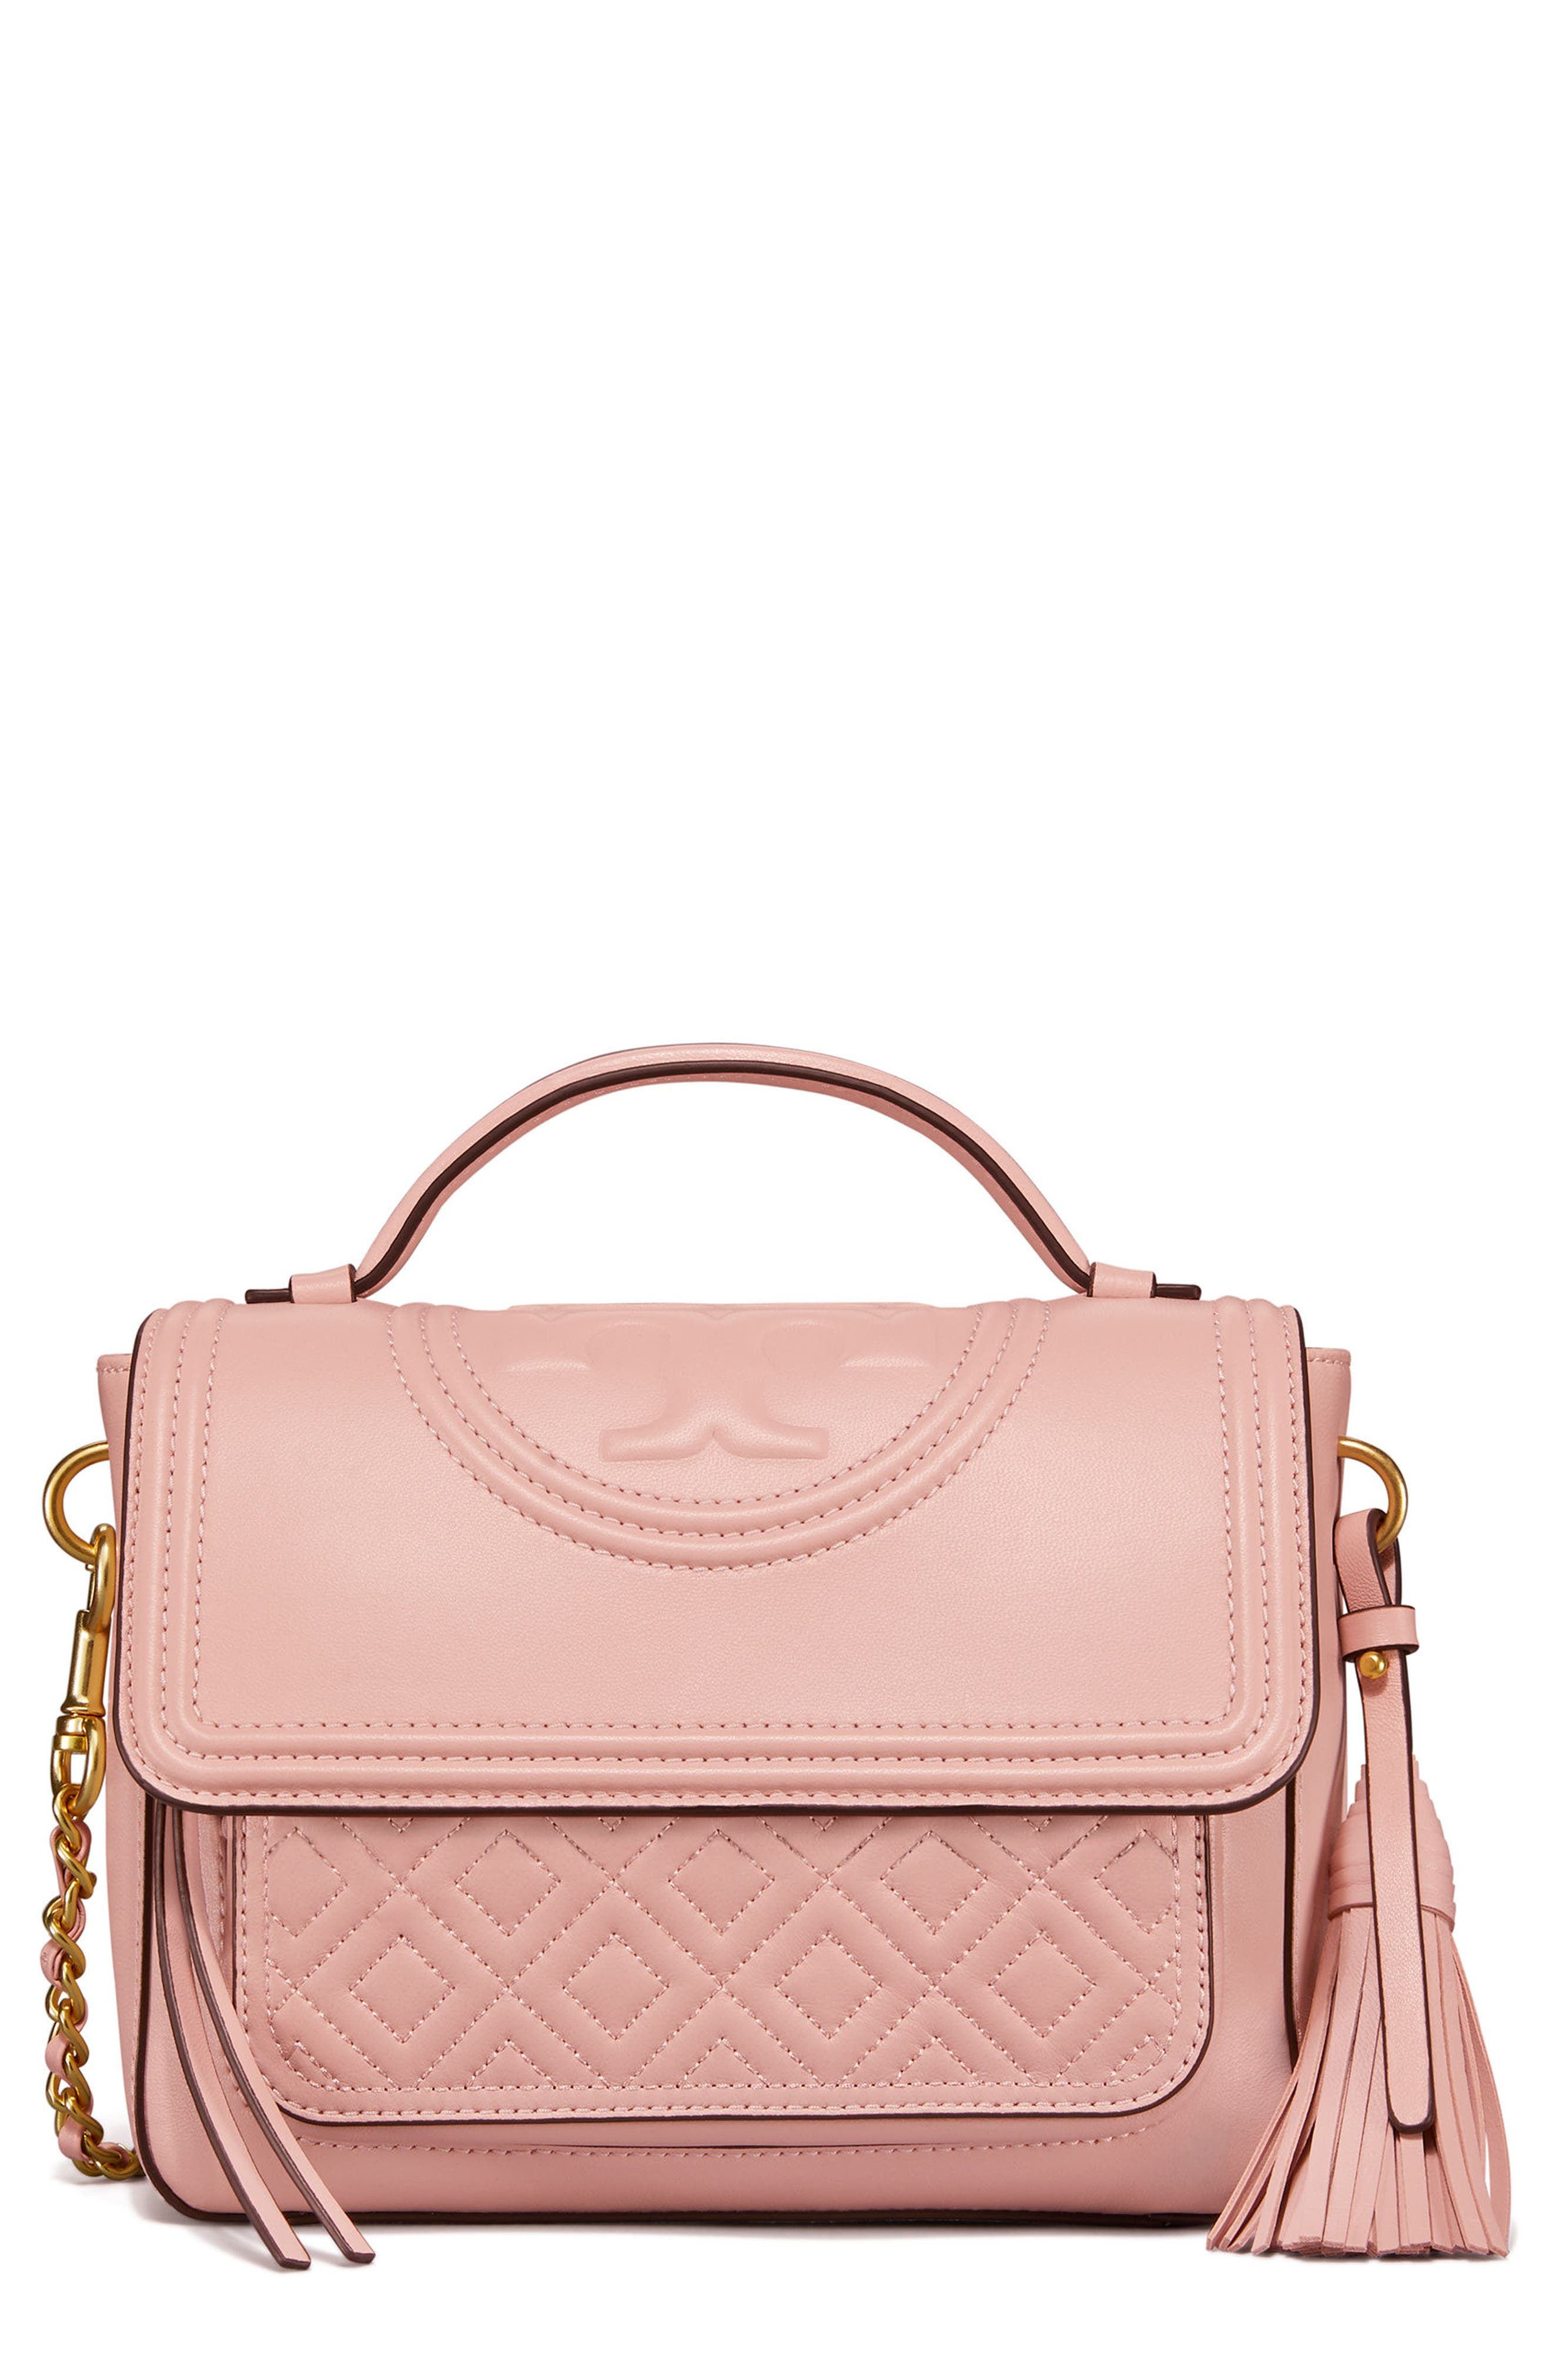 Fleming Quilted Leather Top Handle Satchel,                         Main,                         color, SHELL PINK